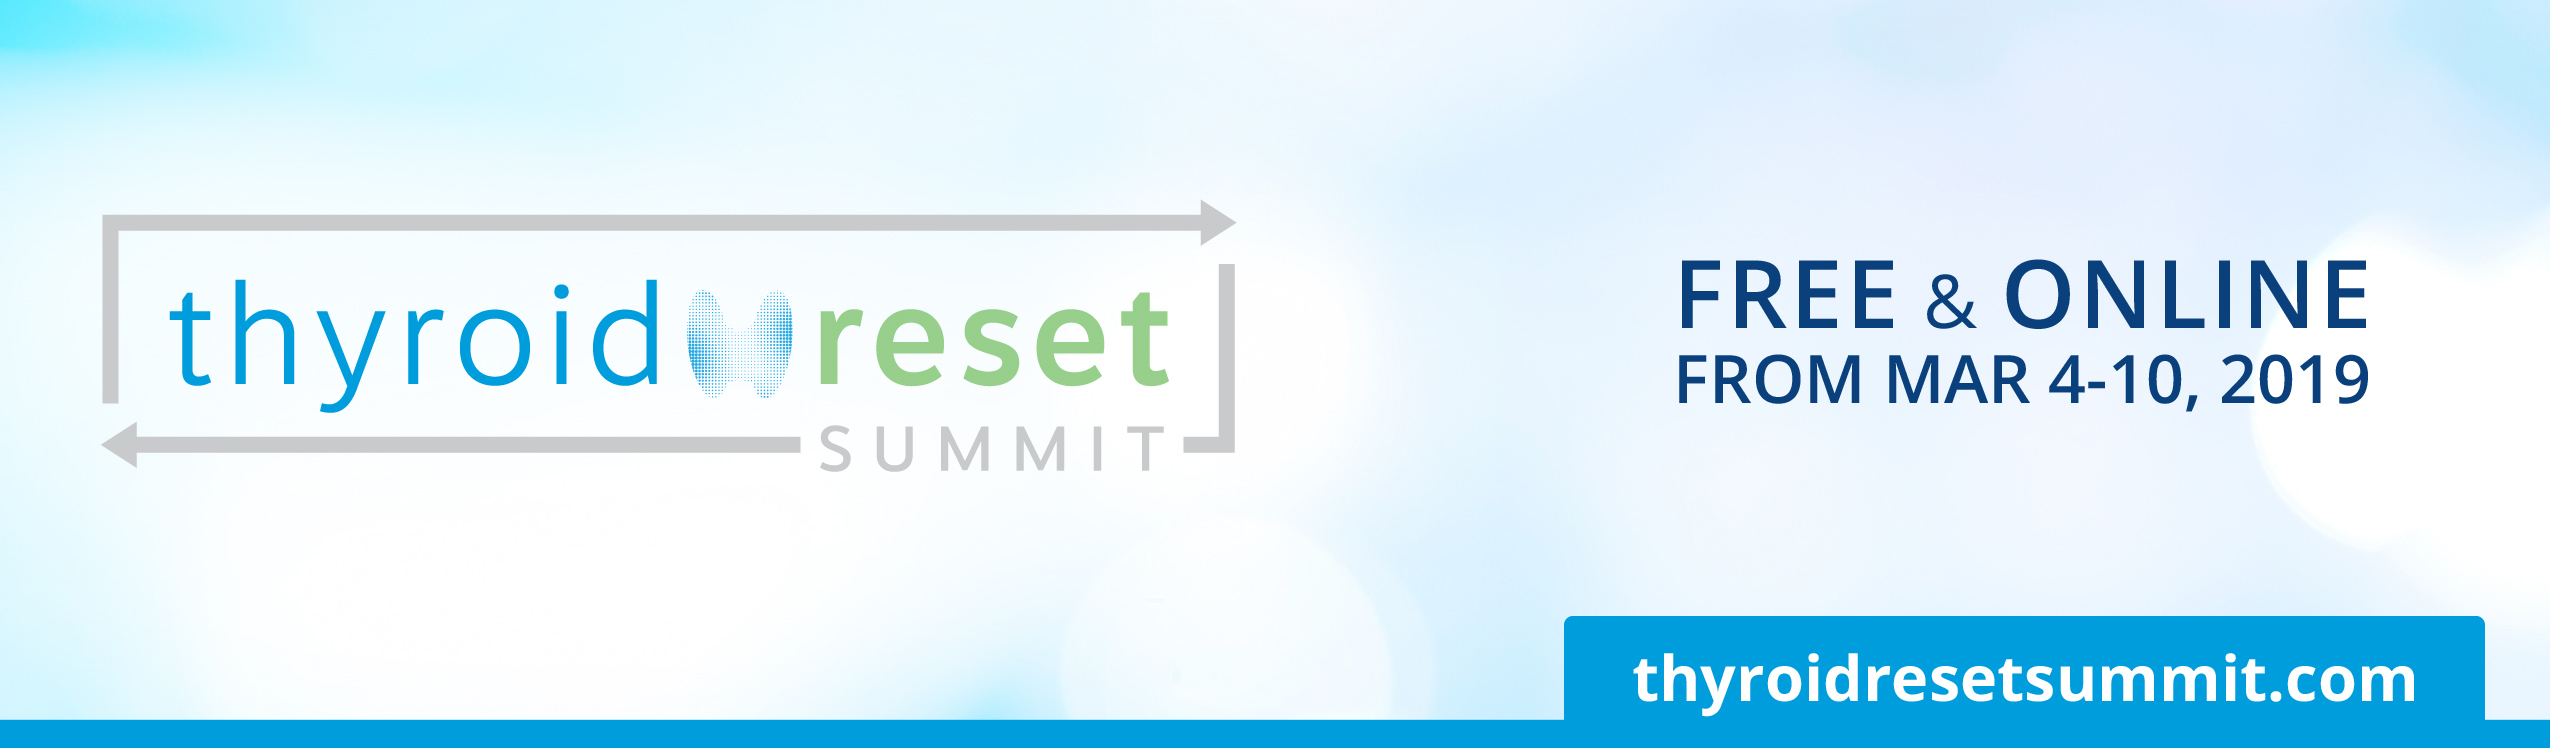 Thyroid Reset Summit